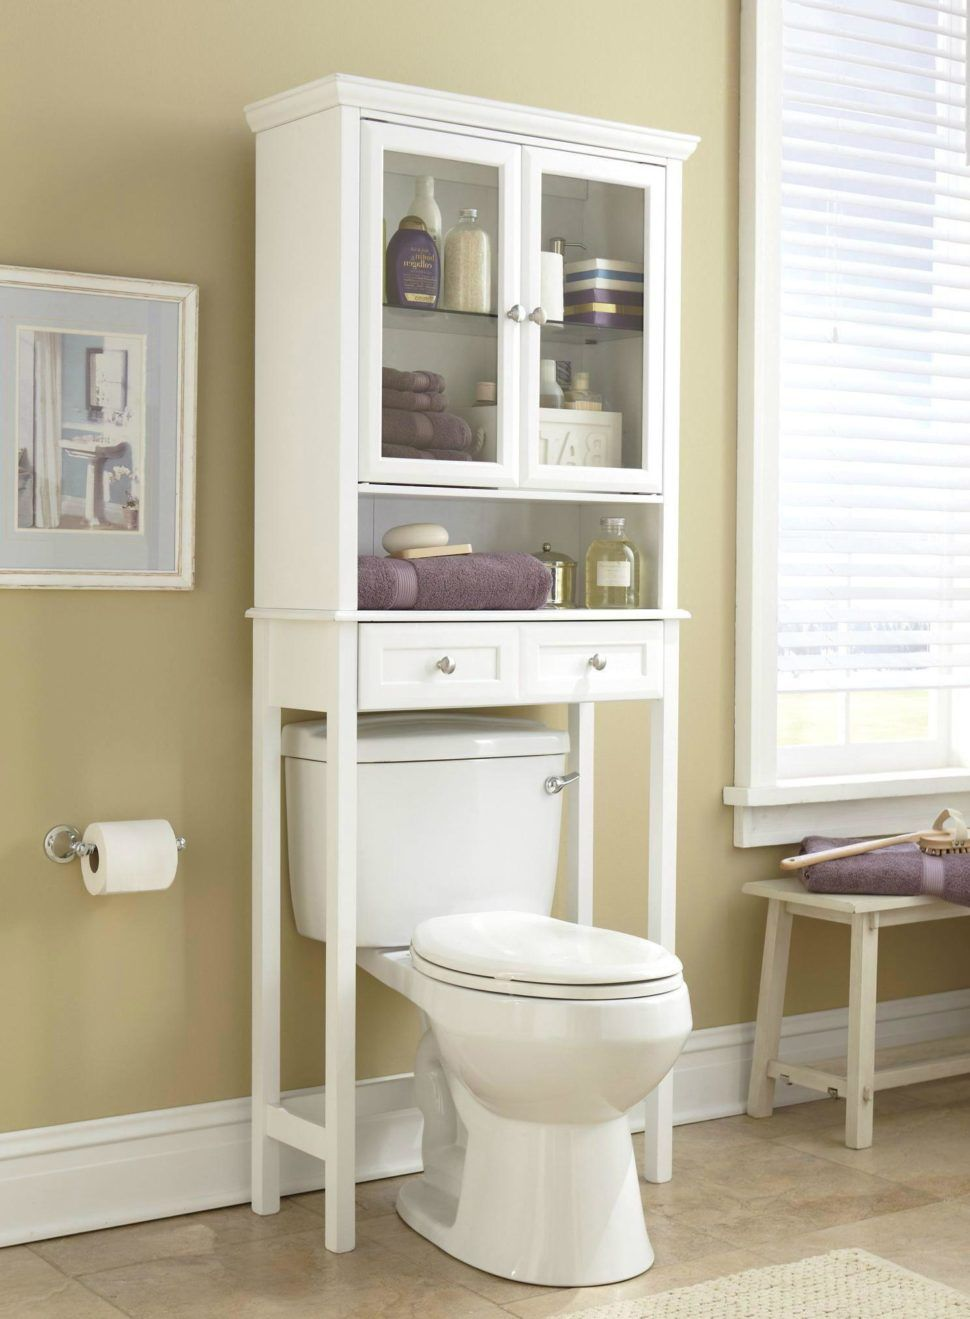 50 Bathroom Storage Ideas Mess Trimming Adorn Your Private Loo Bathroom Cabinets Over Toilet Toilet Storage Bathroom Storage